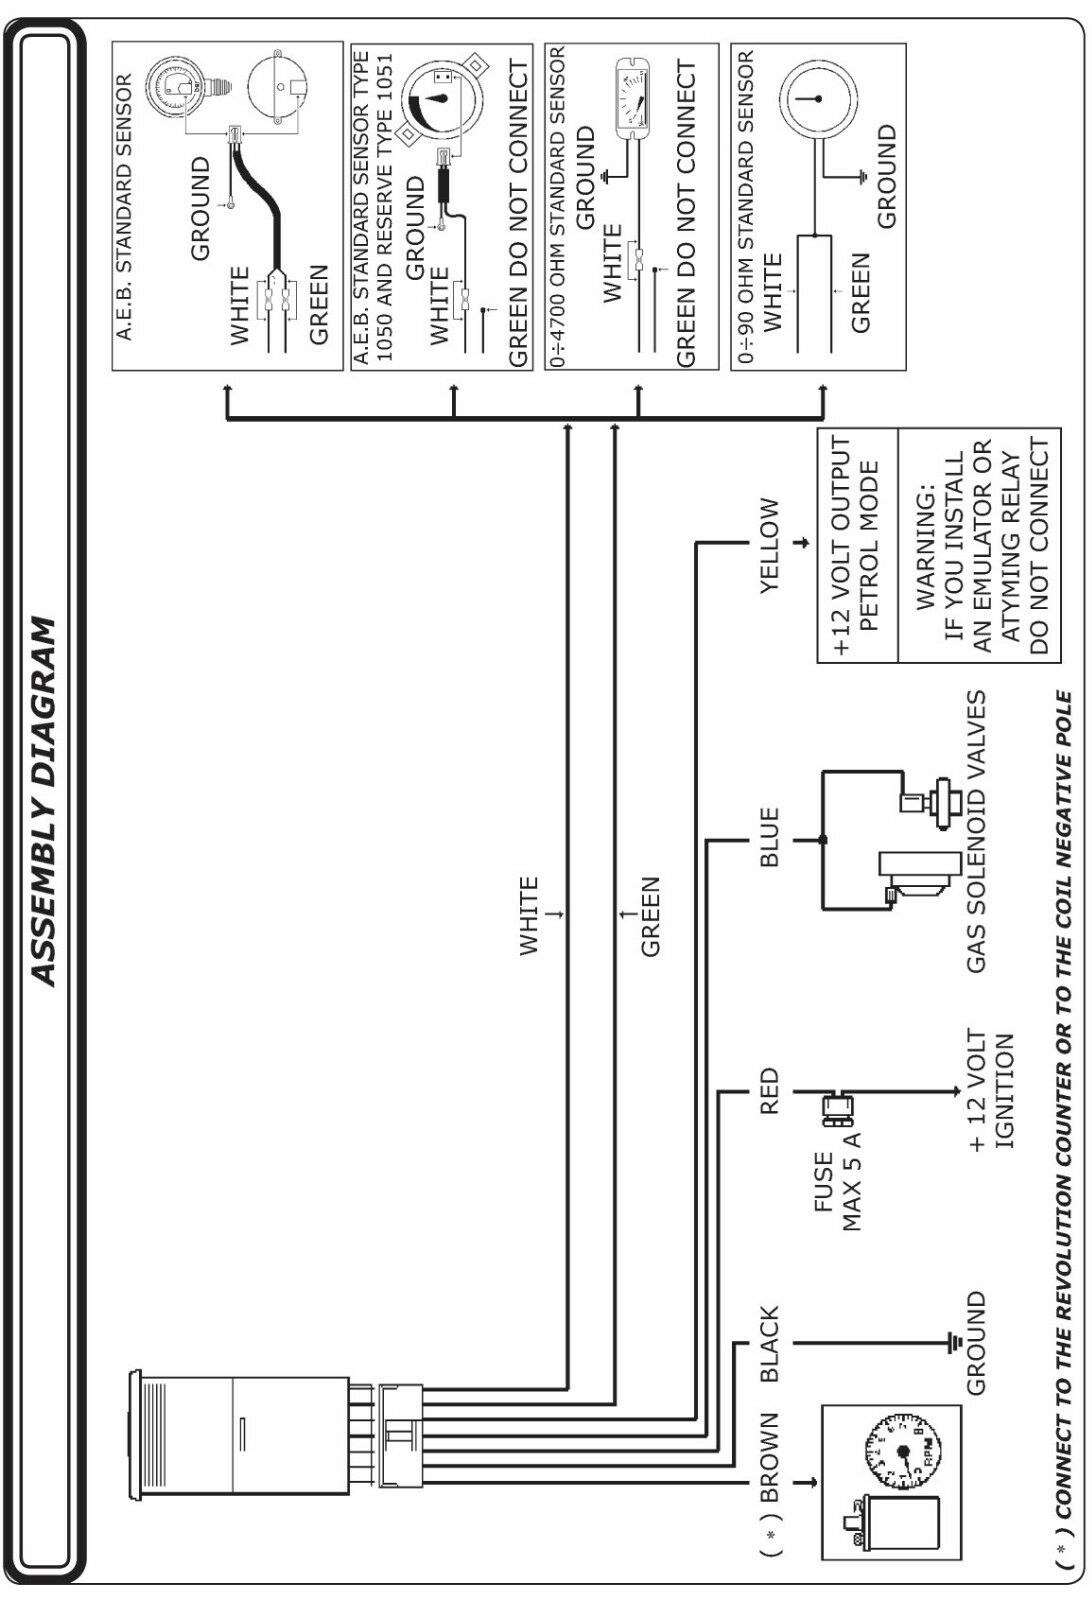 s l1600 lpg conversion wiring diagram efcaviation com lpg gas conversion wiring diagram at aneh.co